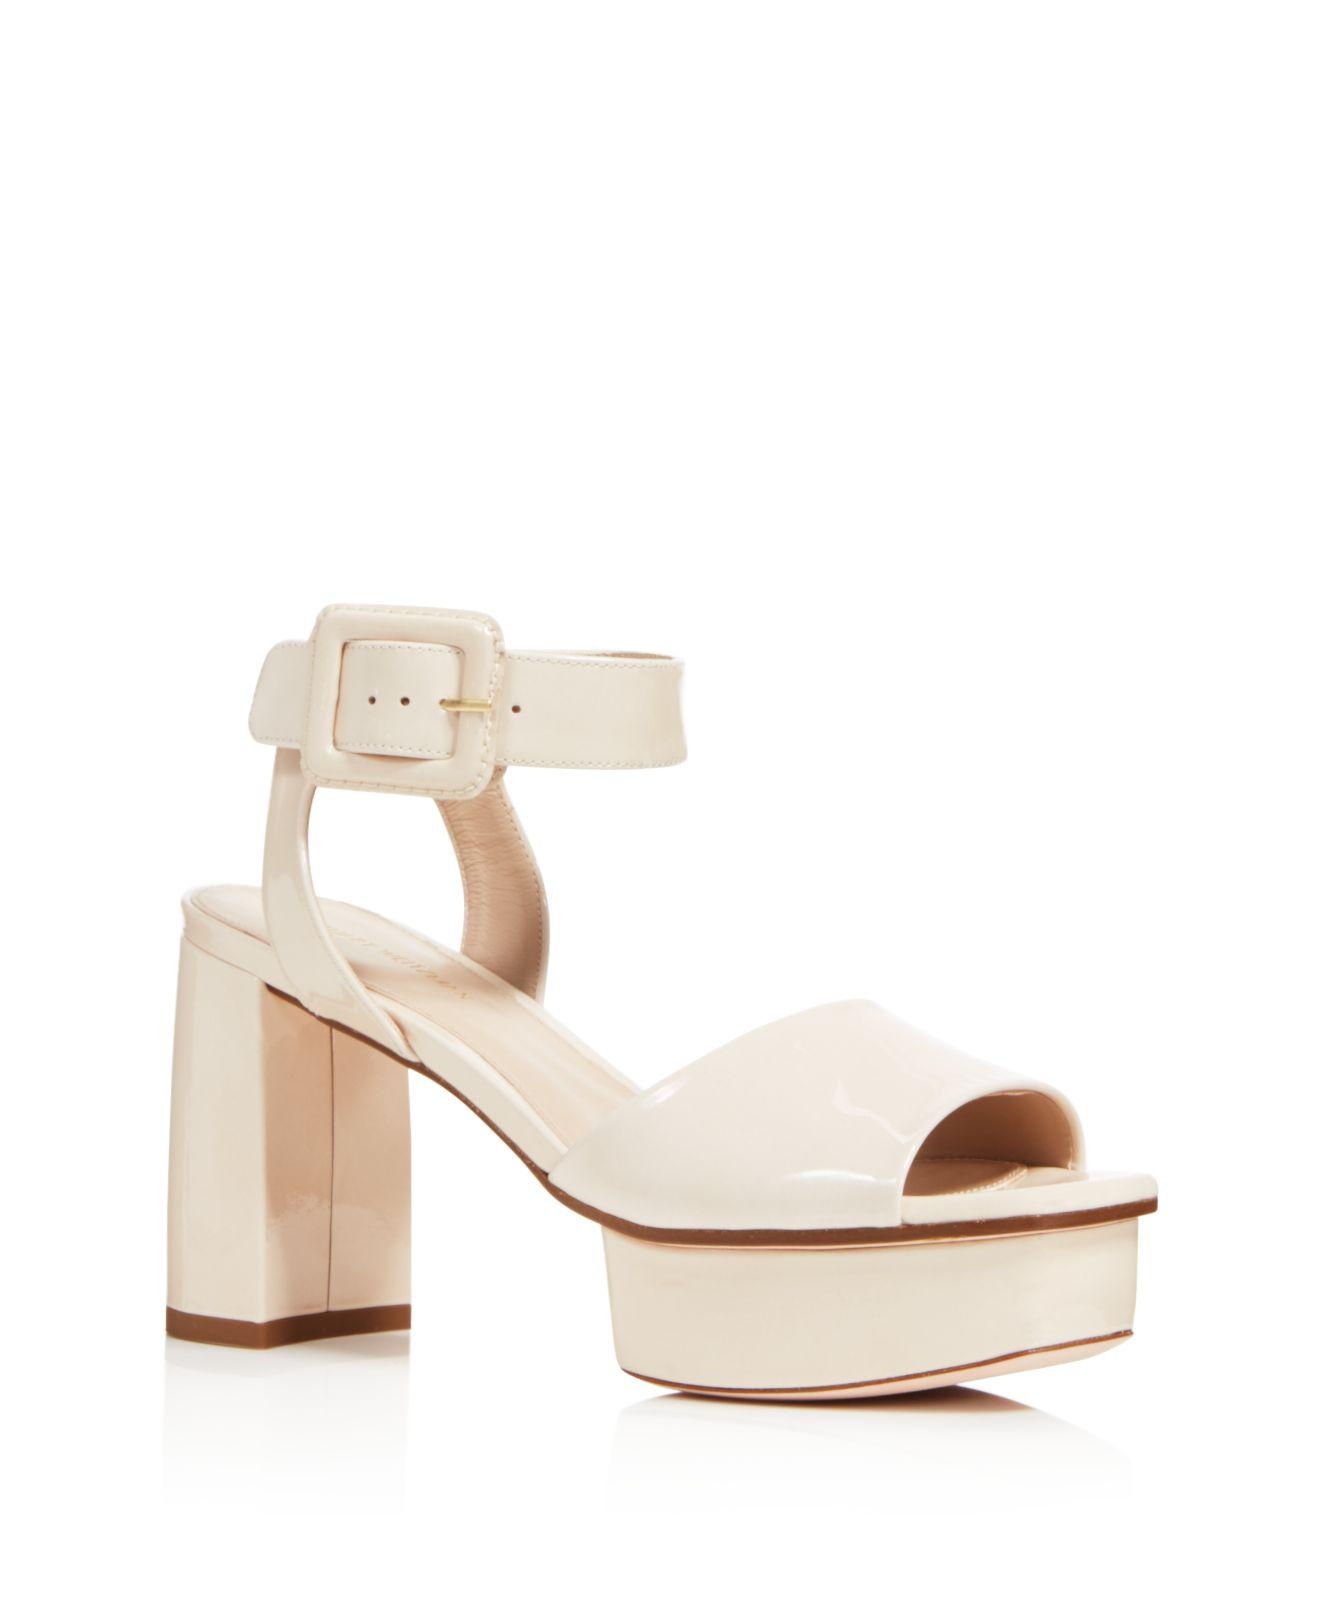 Stuart Weitzman Embossed Crossover Sandals prices sale online professional cheap online original cheap perfect free shipping genuine UVW8Dxd